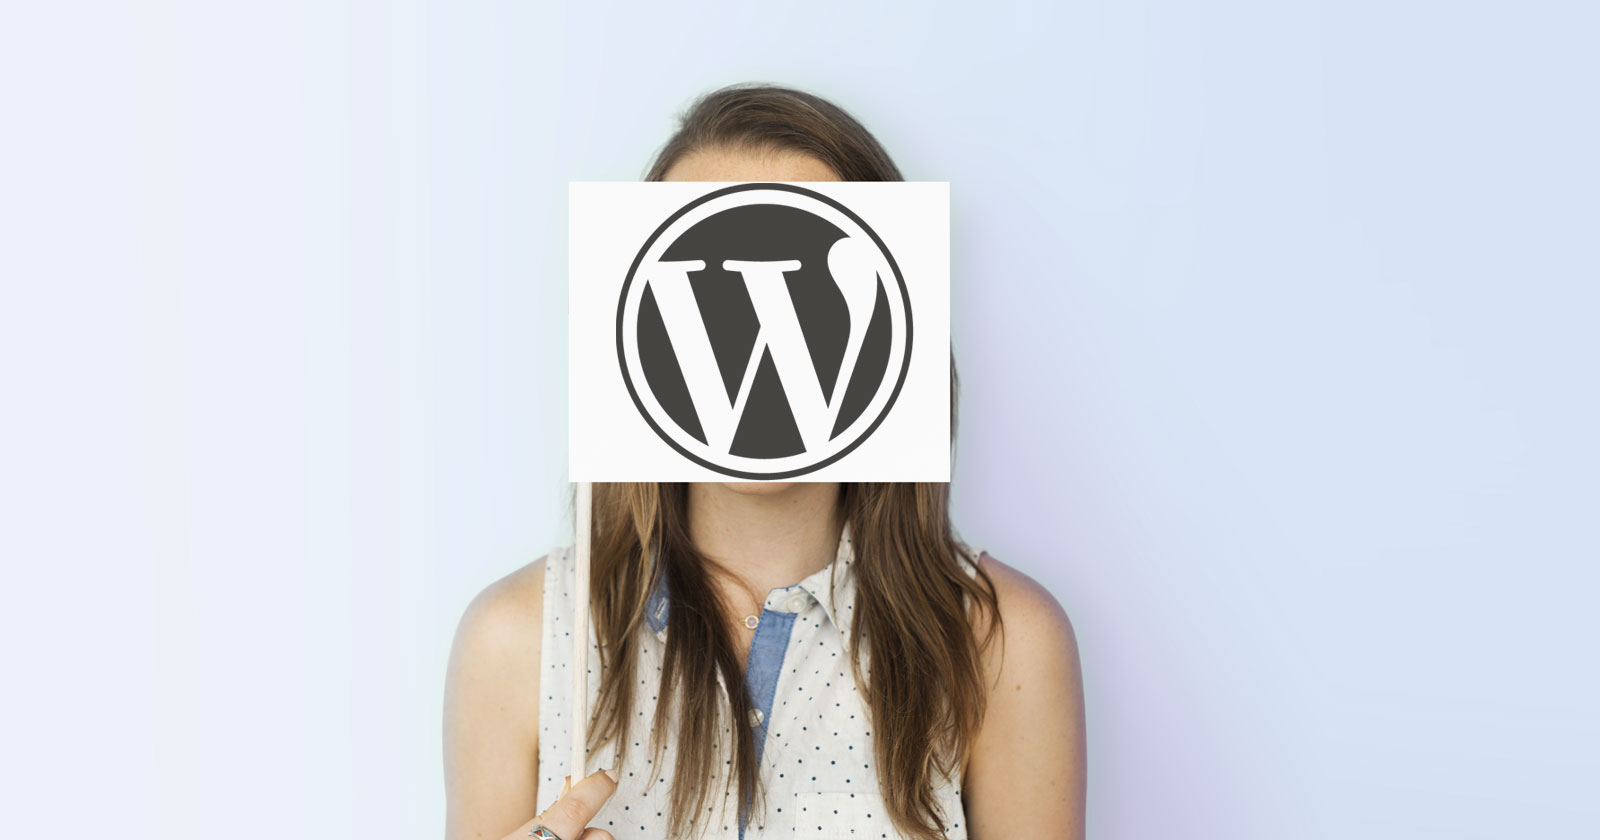 WordPress 5.6 Feature Removed For Subpar Experience - Search Engine Journal